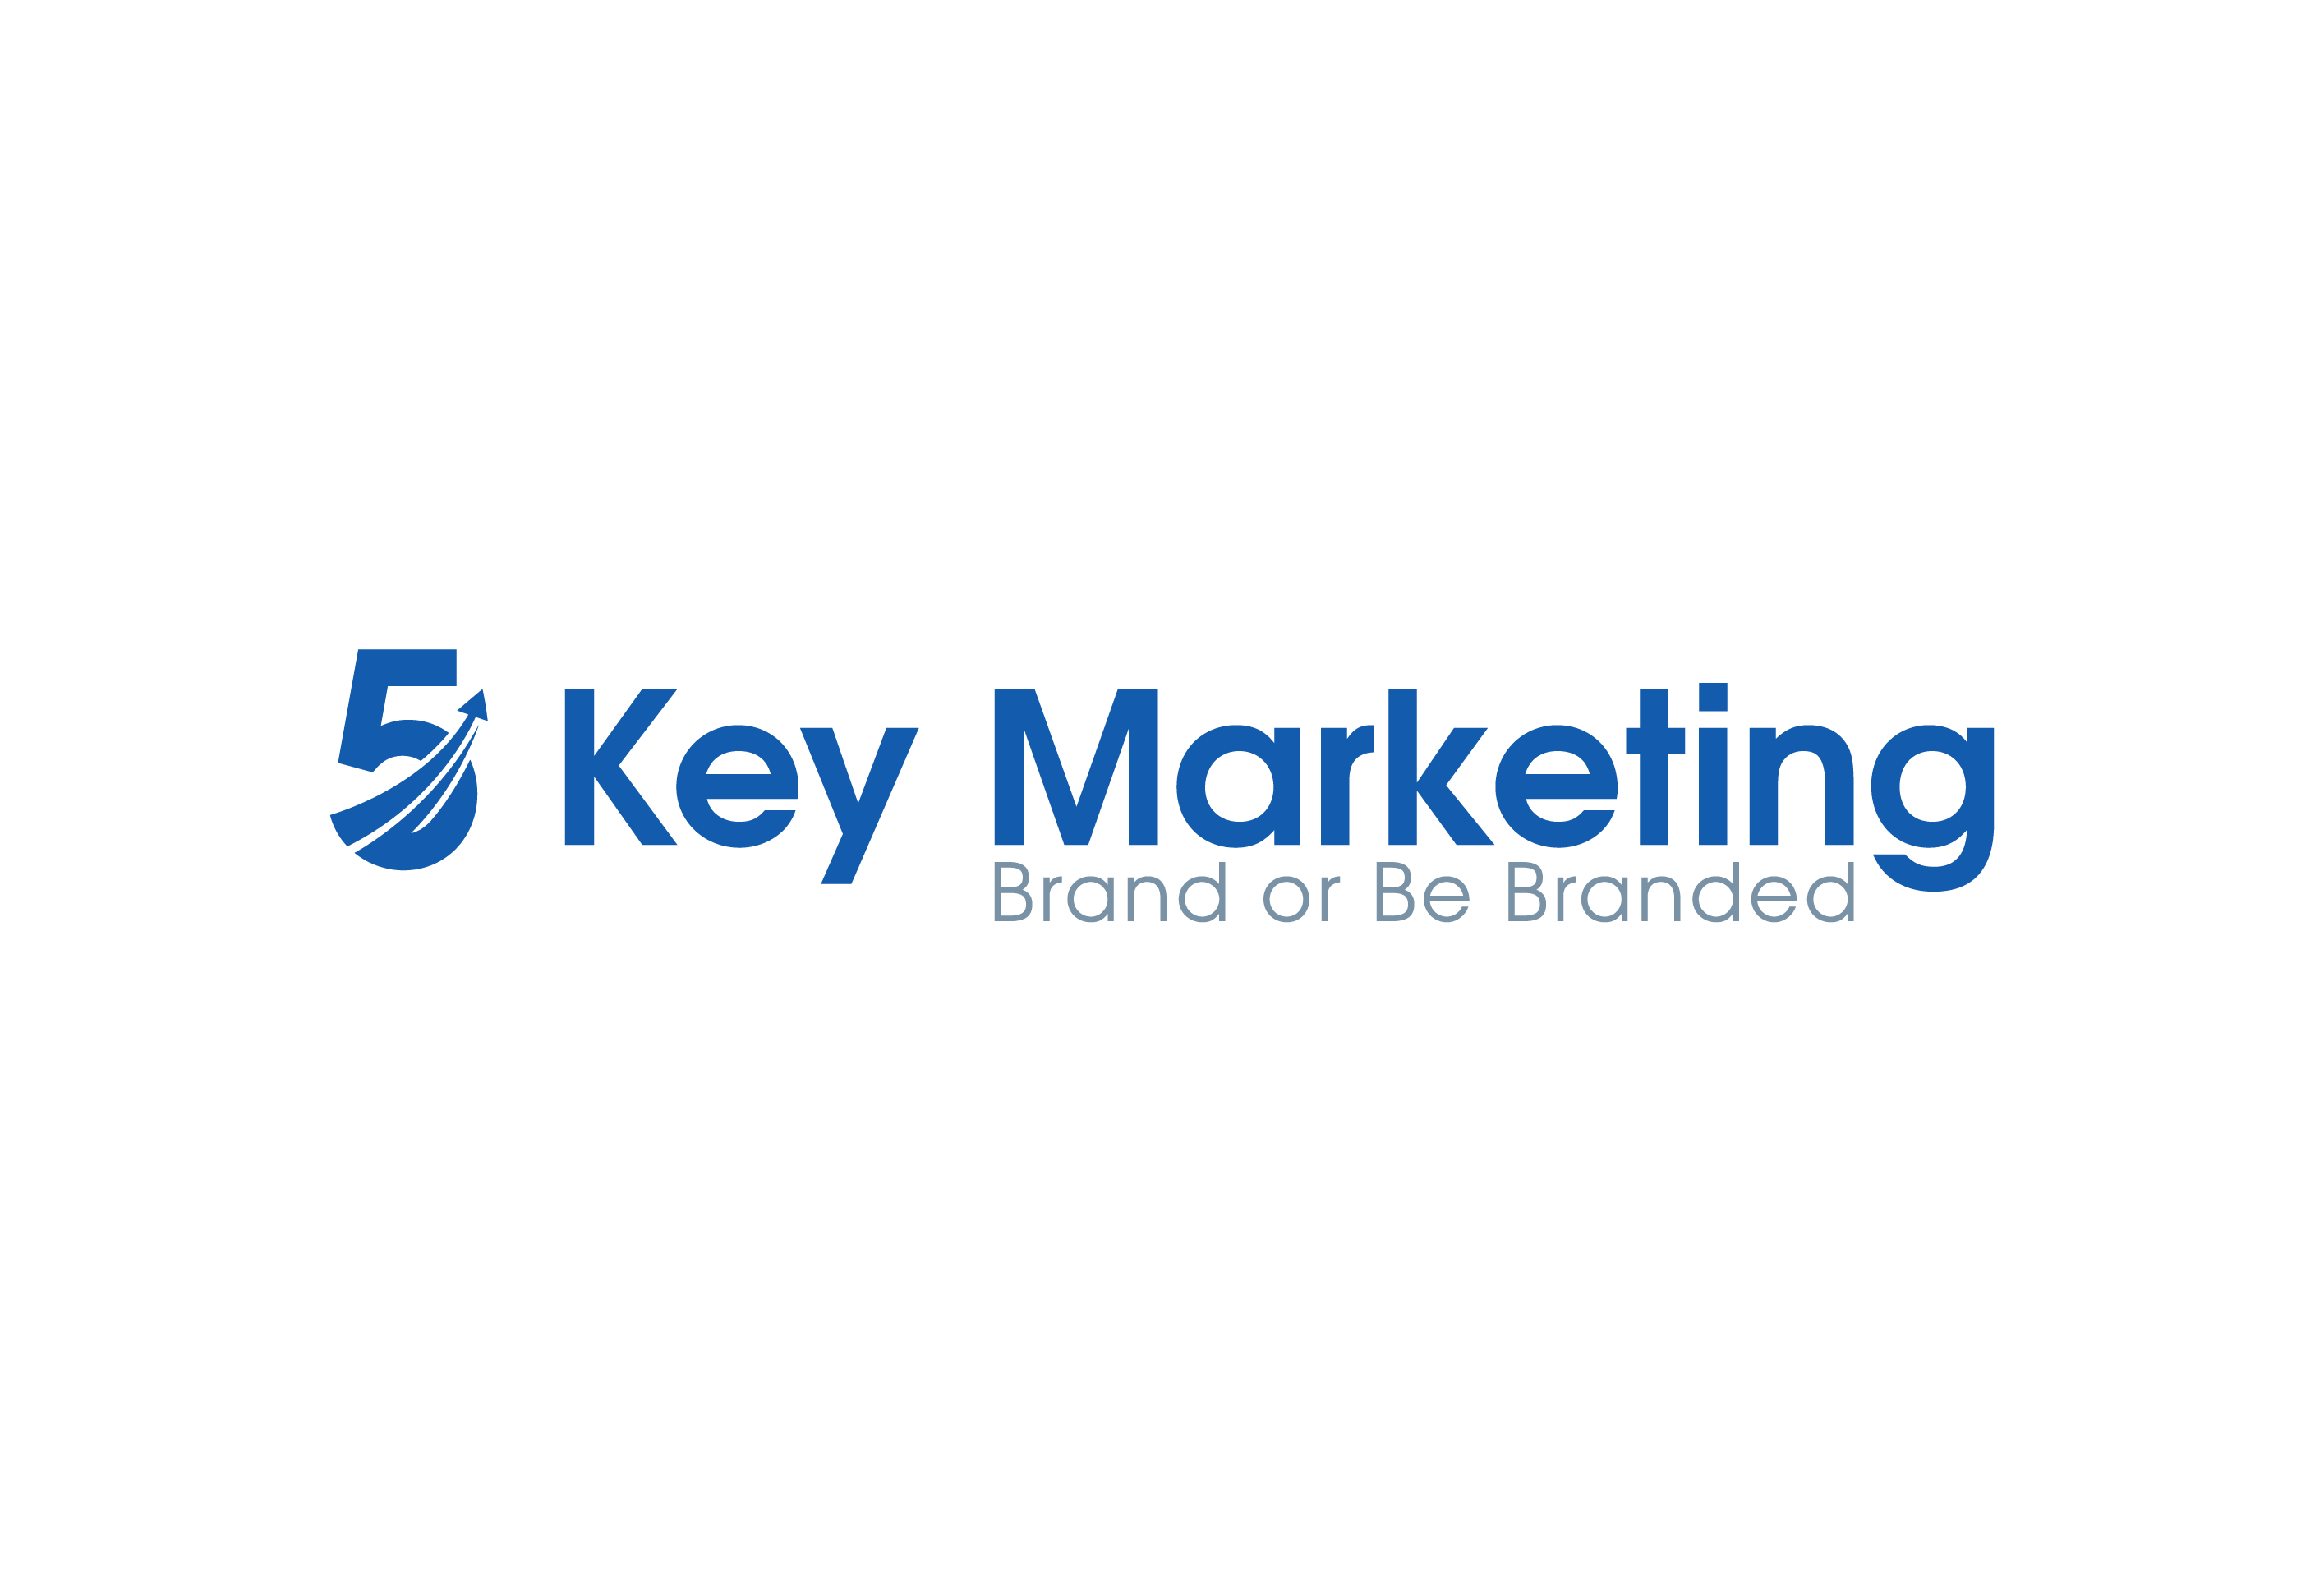 Five Key Marketing Operates With One Key Principle In Mind